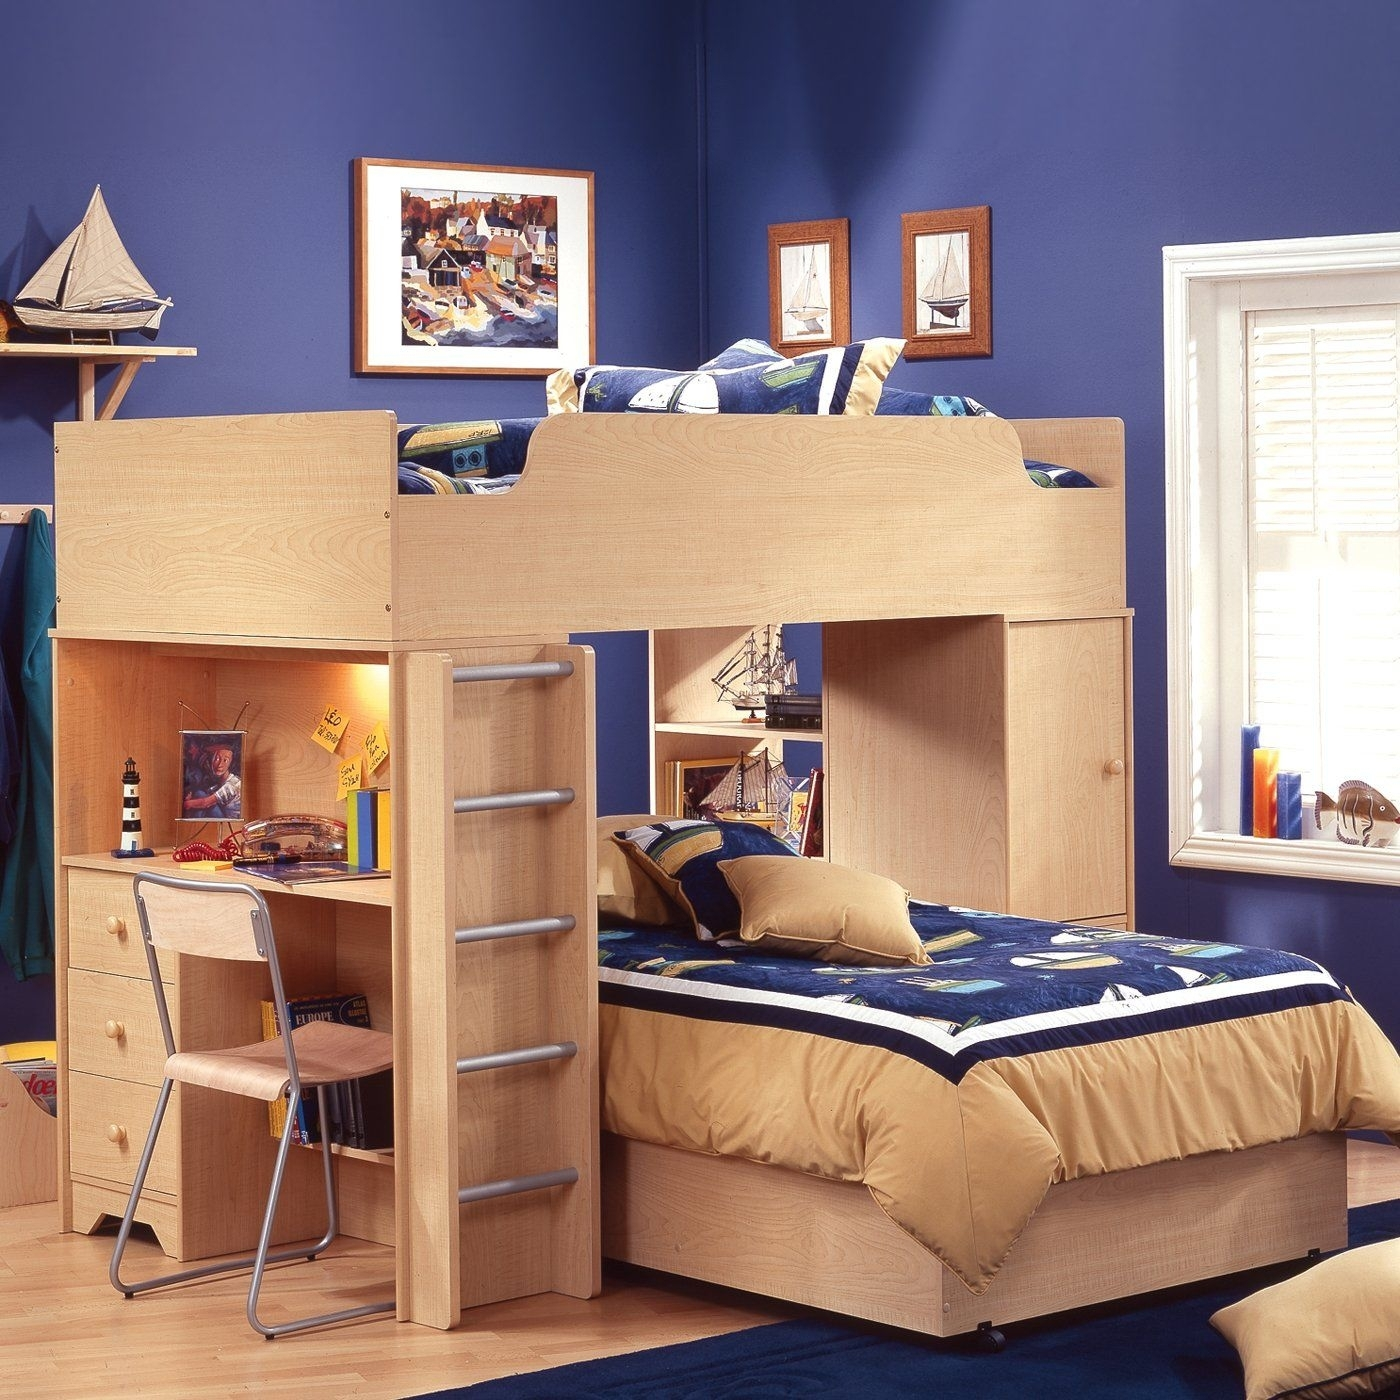 Picture of: L Shaped Bunk Bed Ideas On Foter